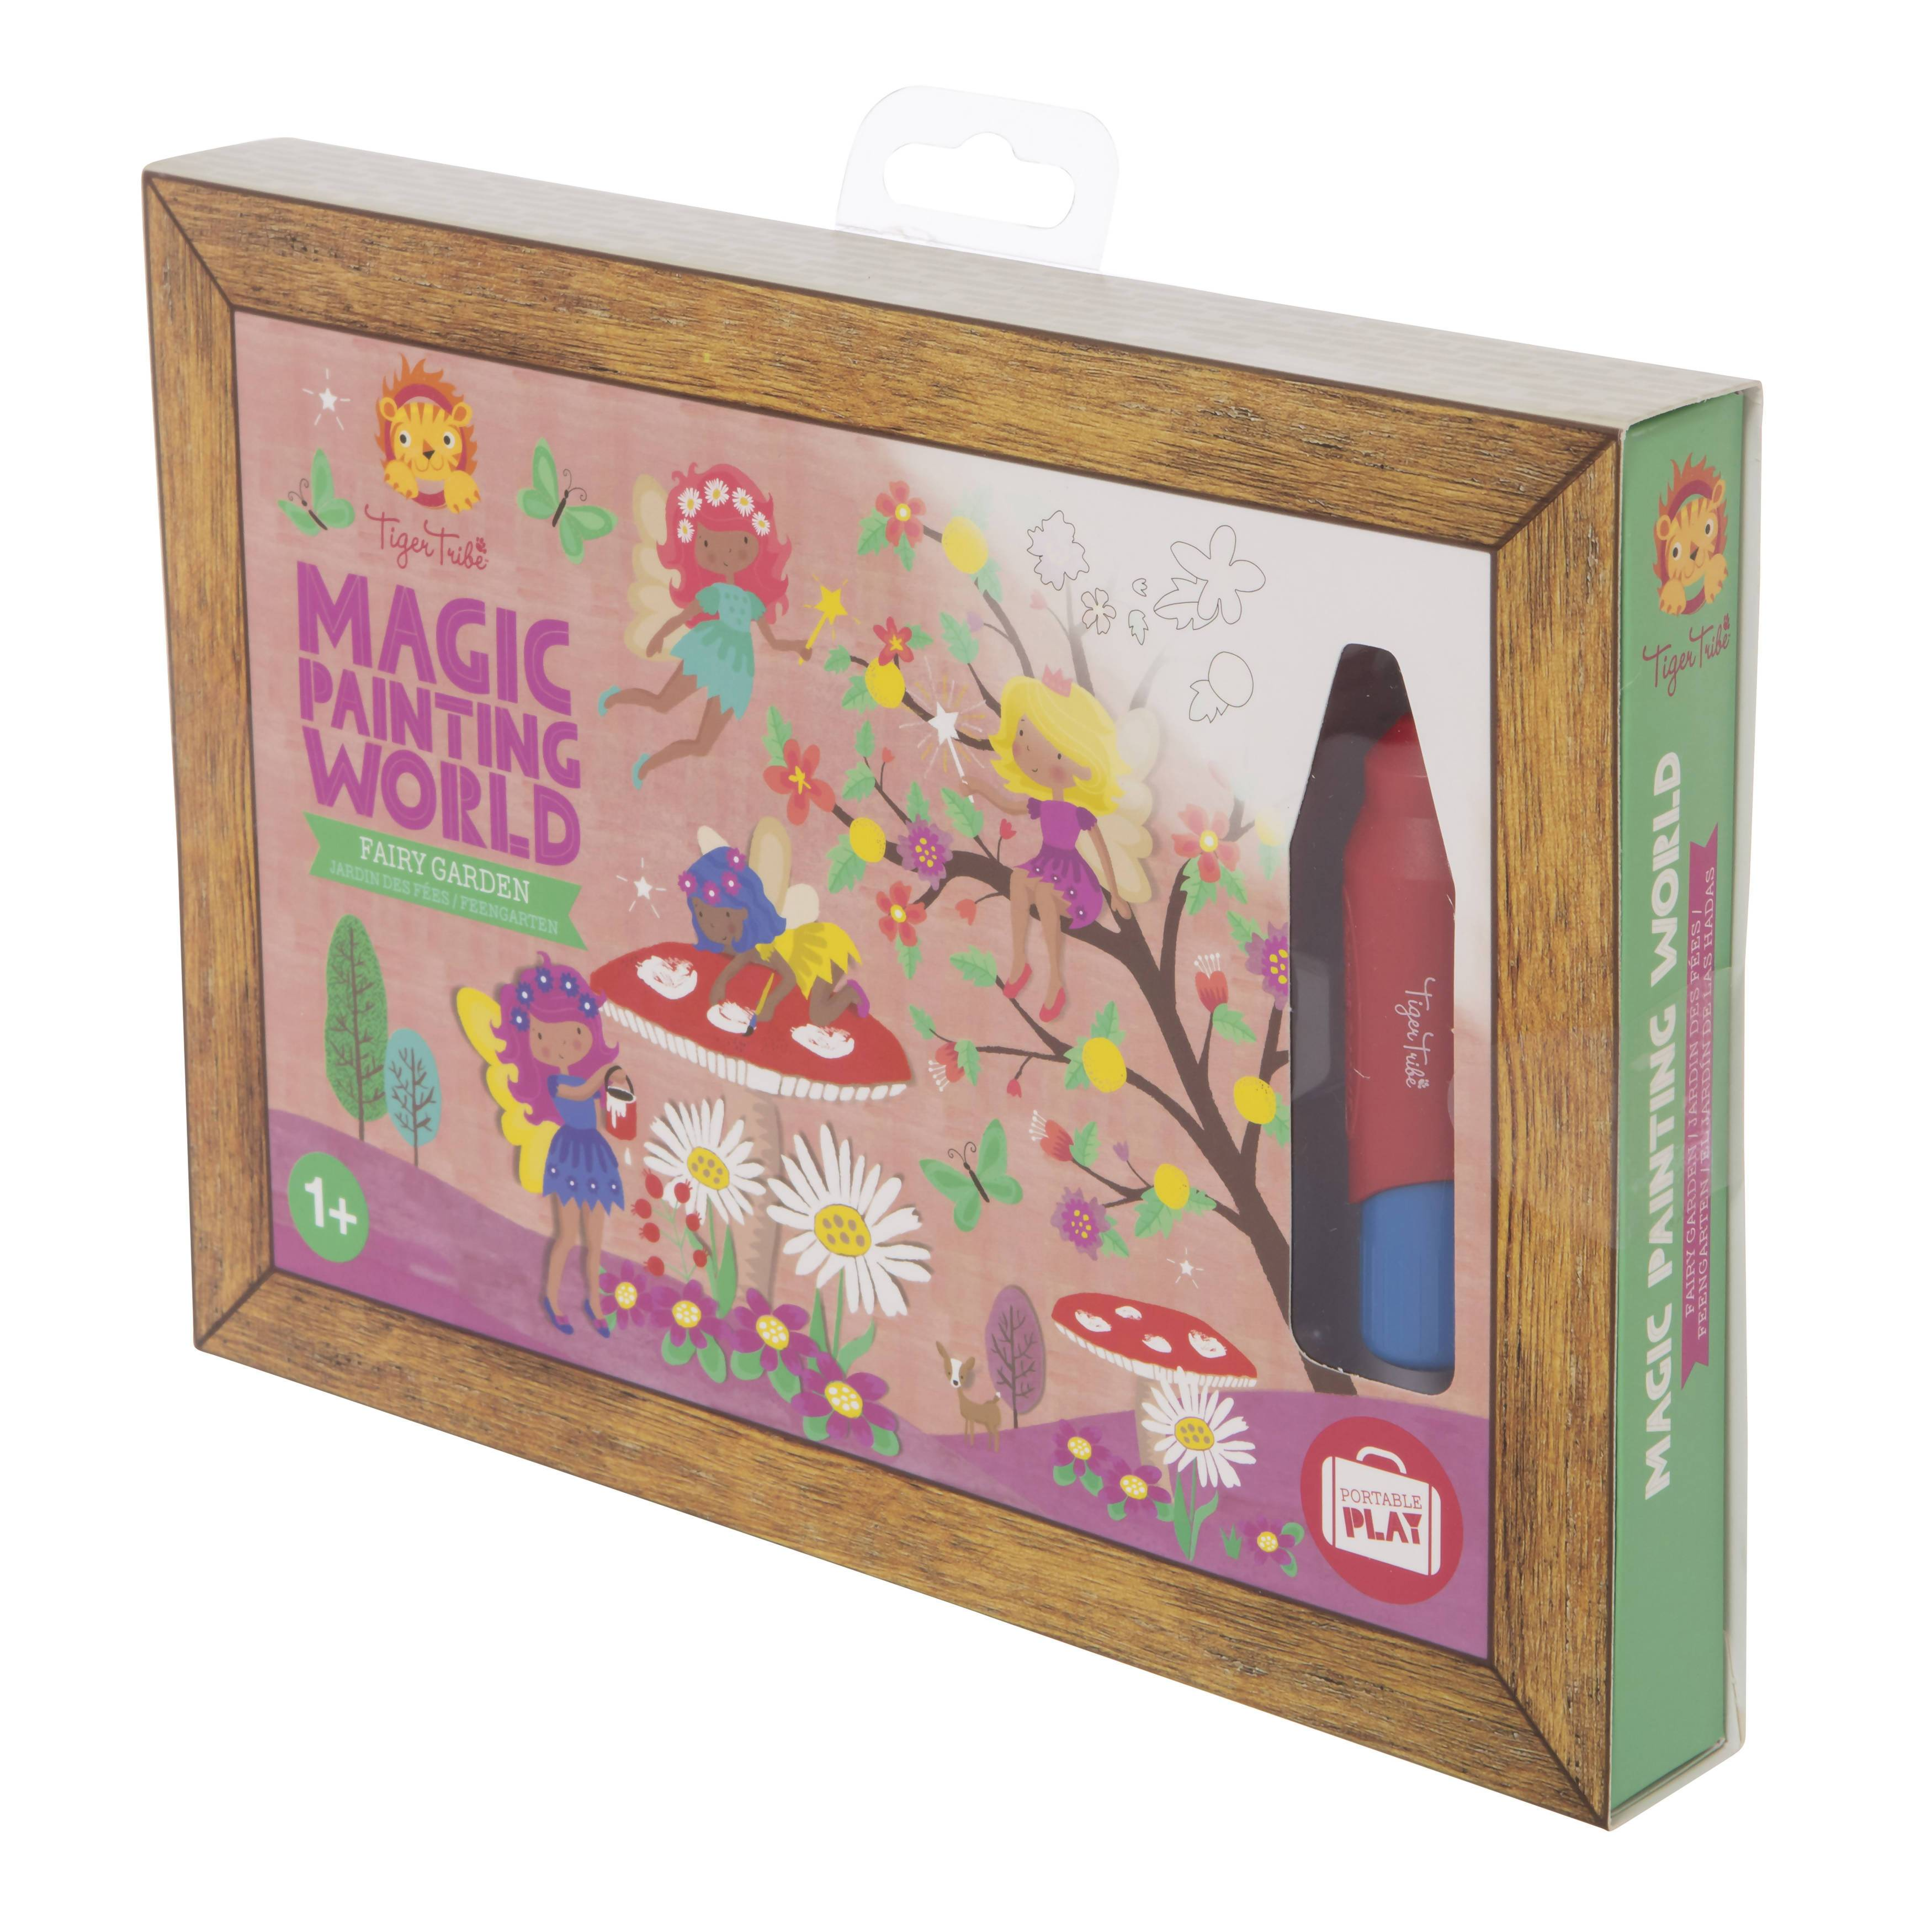 Tiger Tribe Magic Painting World - Fairy Garden - Children Colouring Books - The Children's Showcase - Naiise